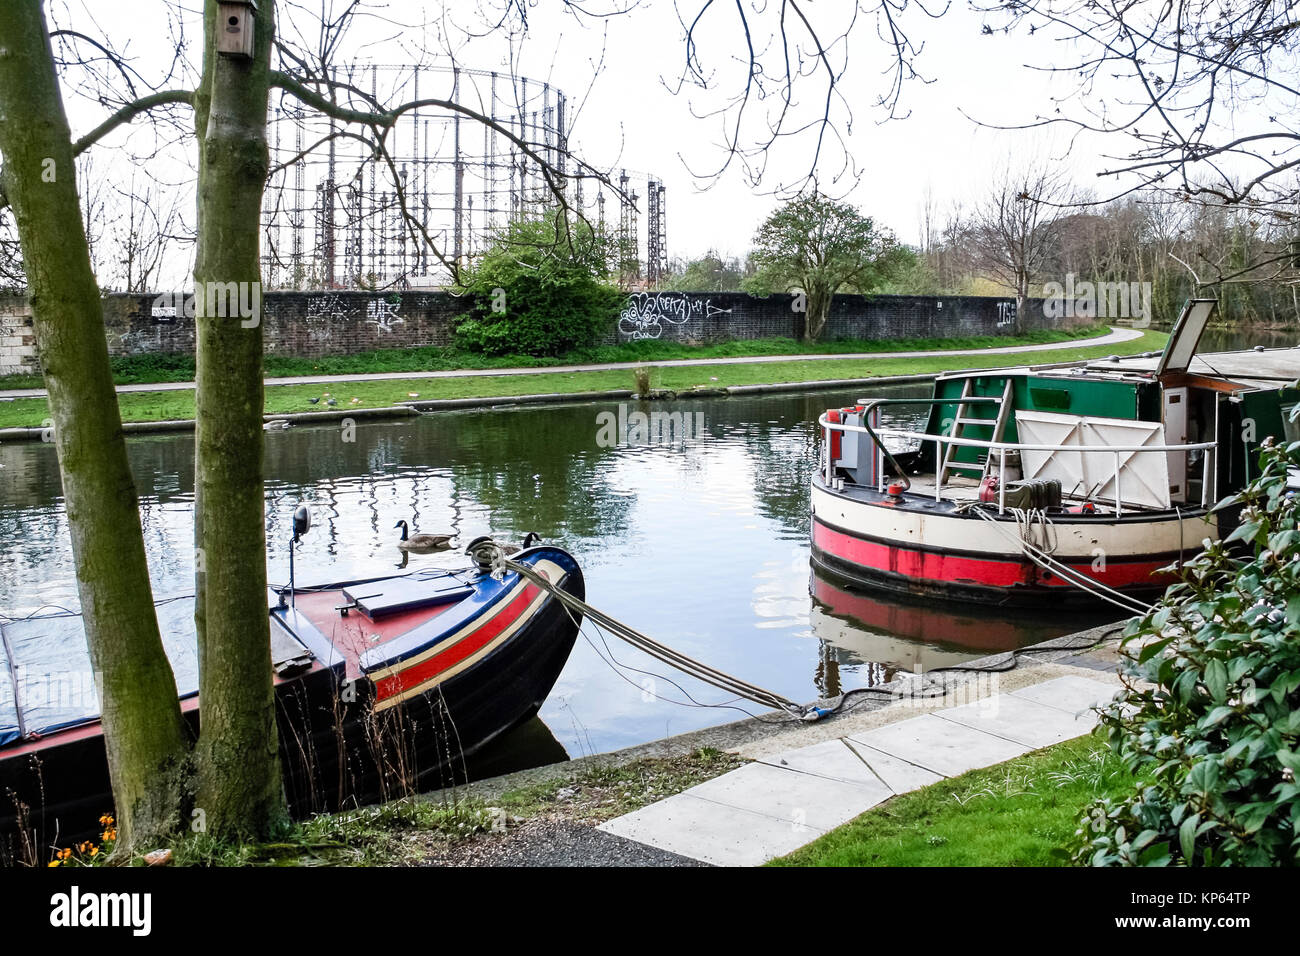 Narrowboats on Regent's Canal at Kensal Green, London, UK,  the disused gasometers in the background Stock Photo